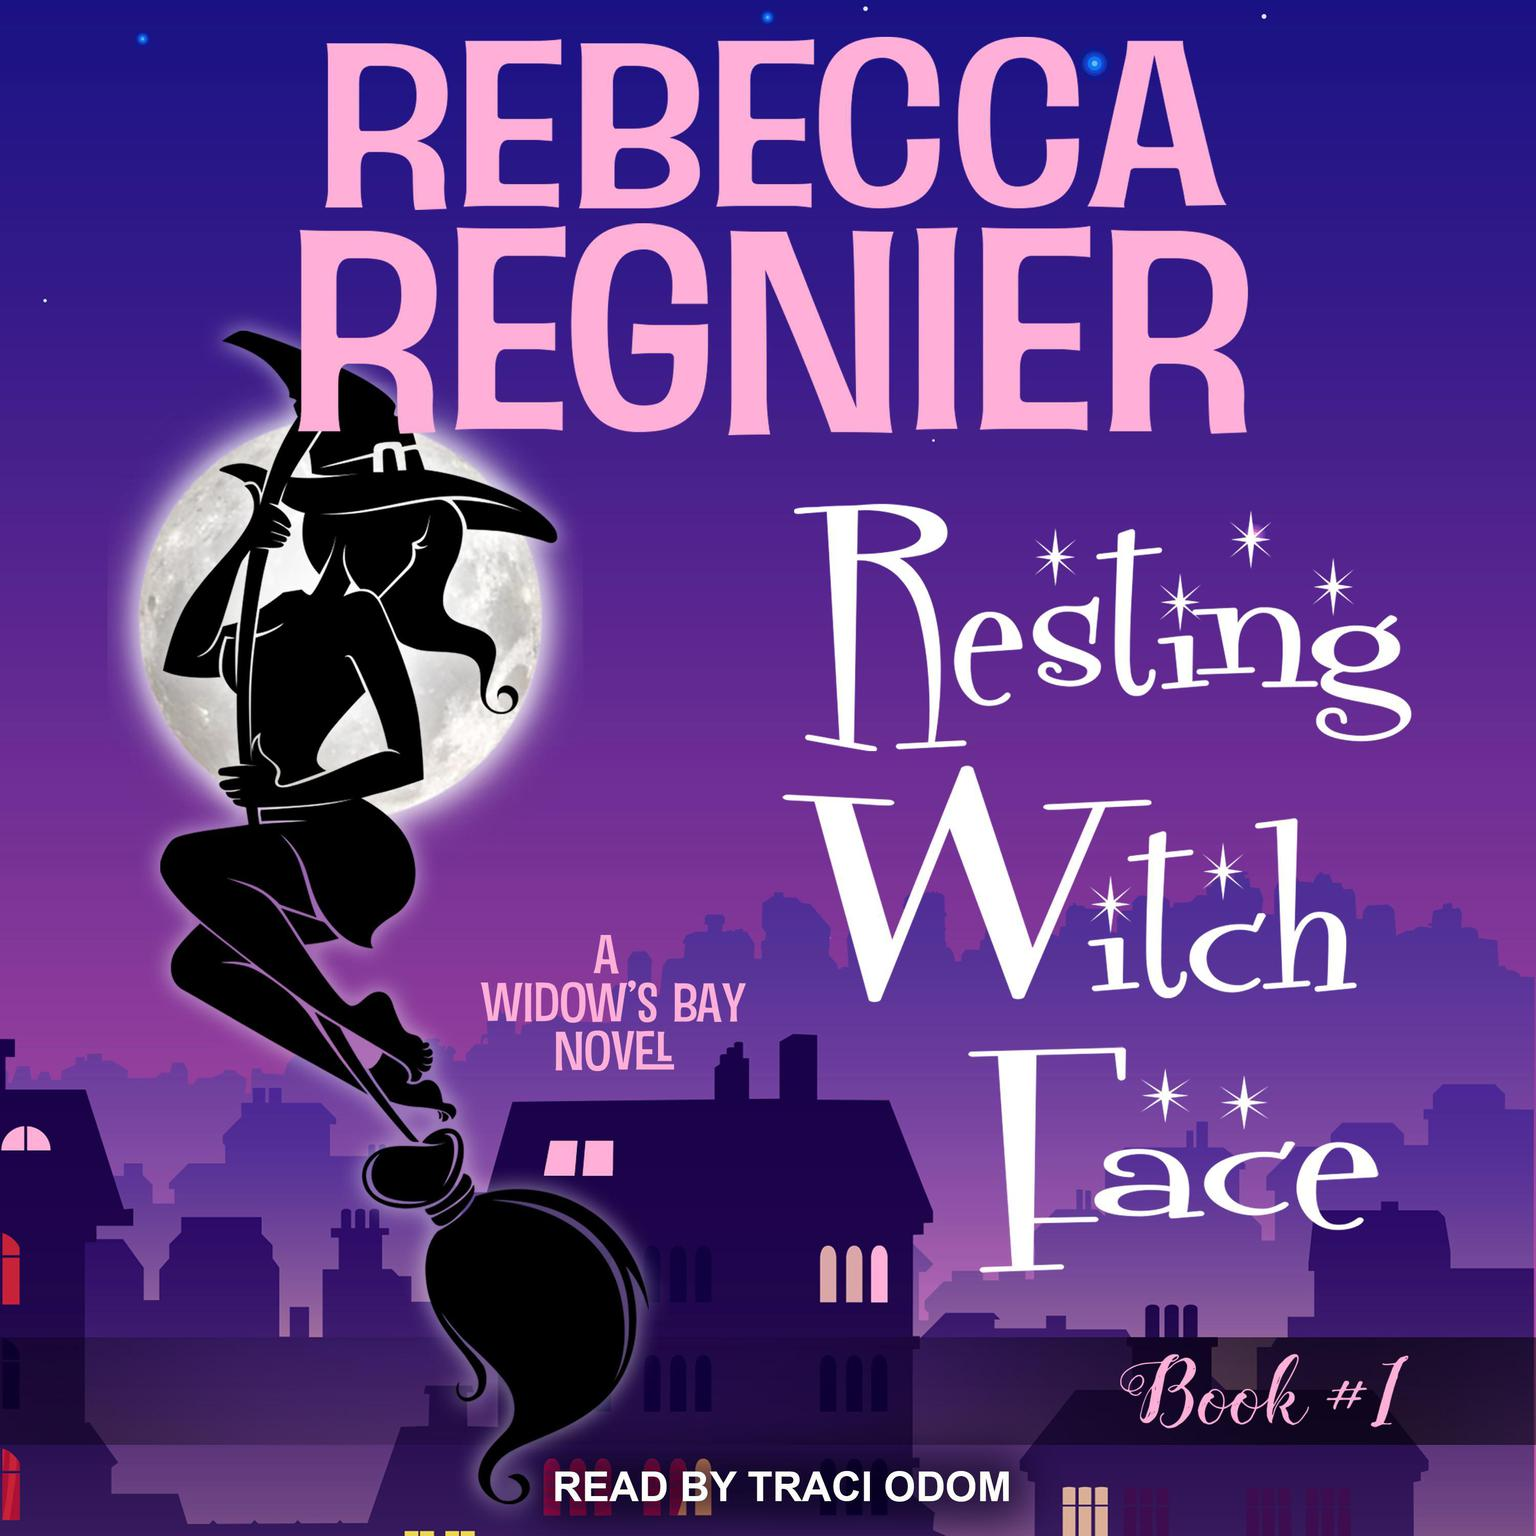 Resting Witch Face: A Widows Bay Novel Audiobook, by Rebecca Regnier